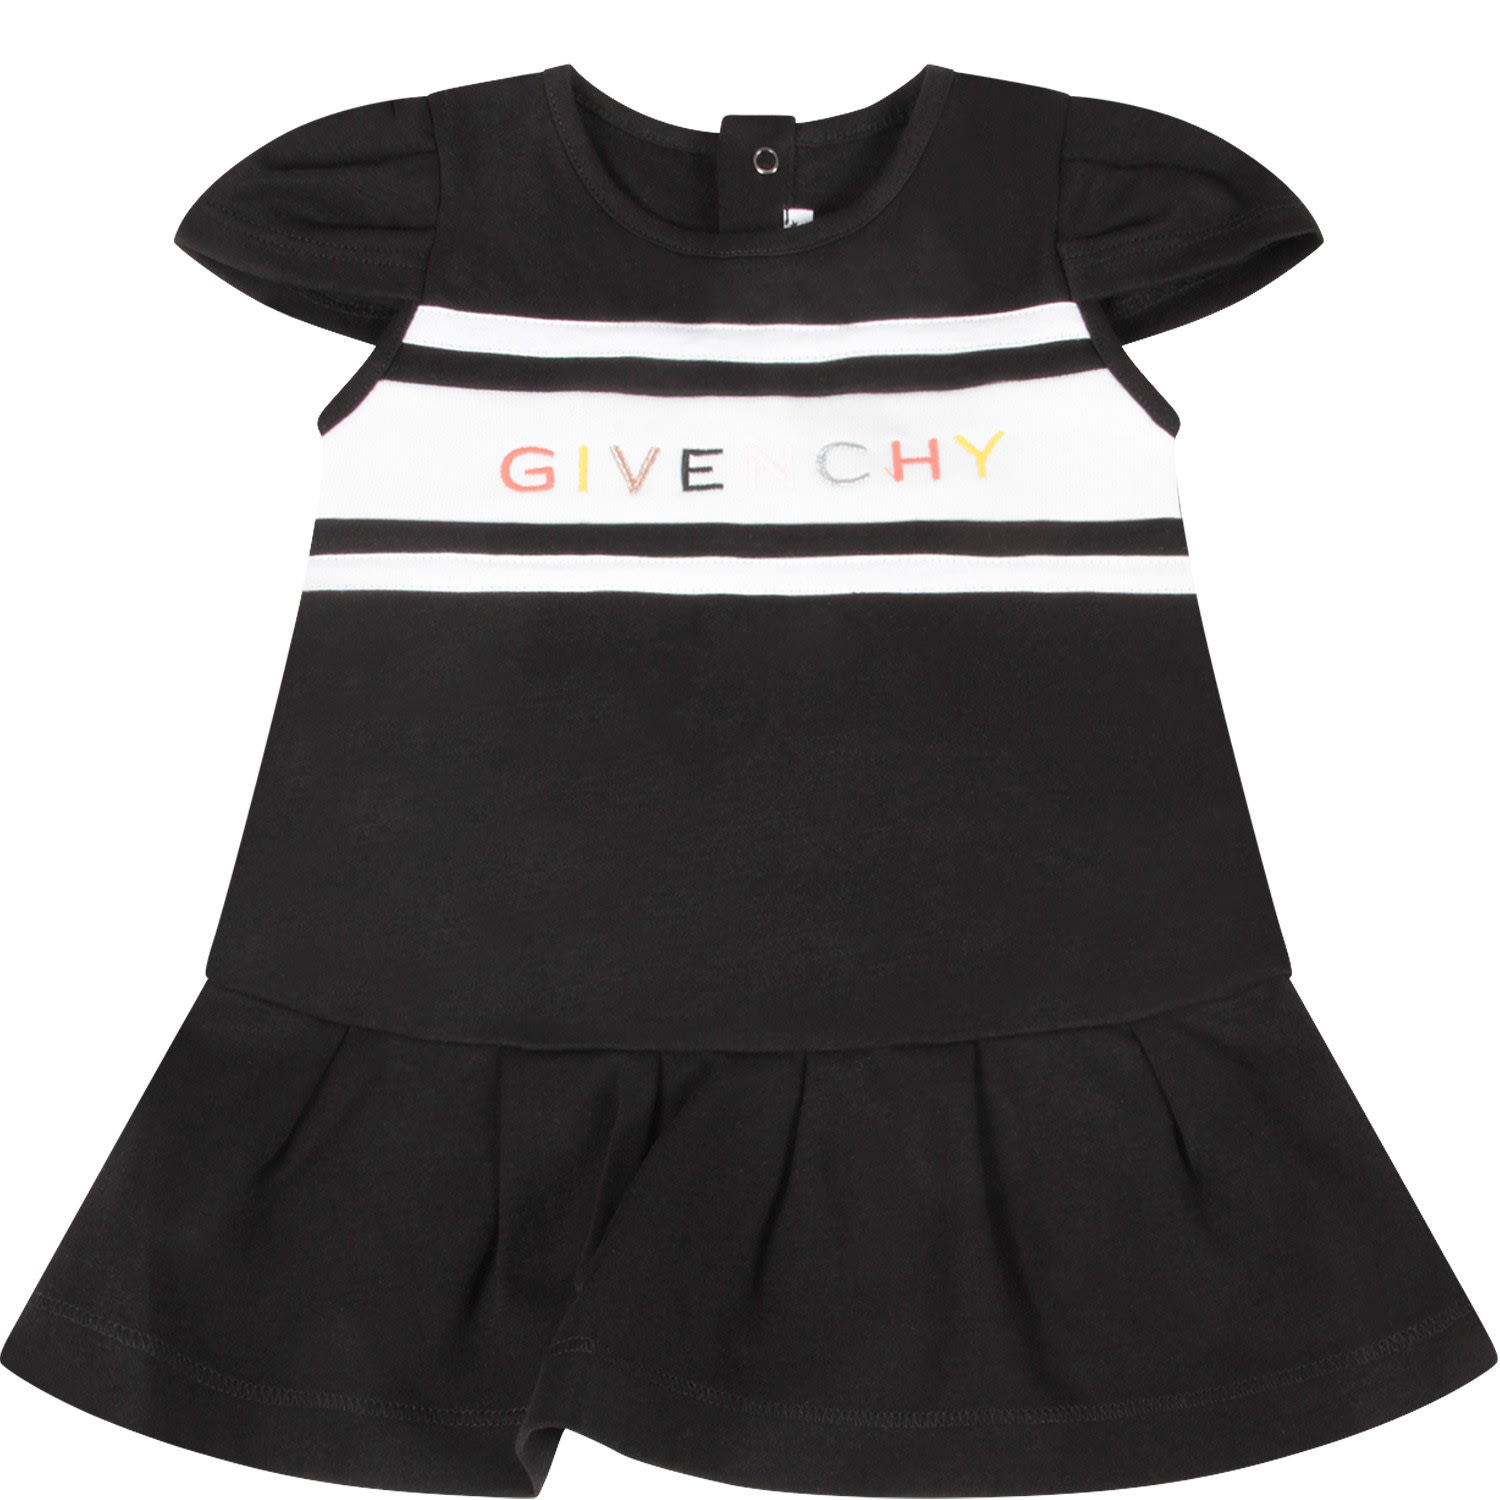 Buy Givenchy Black Dress With Logo For Baby online, shop Givenchy with free shipping